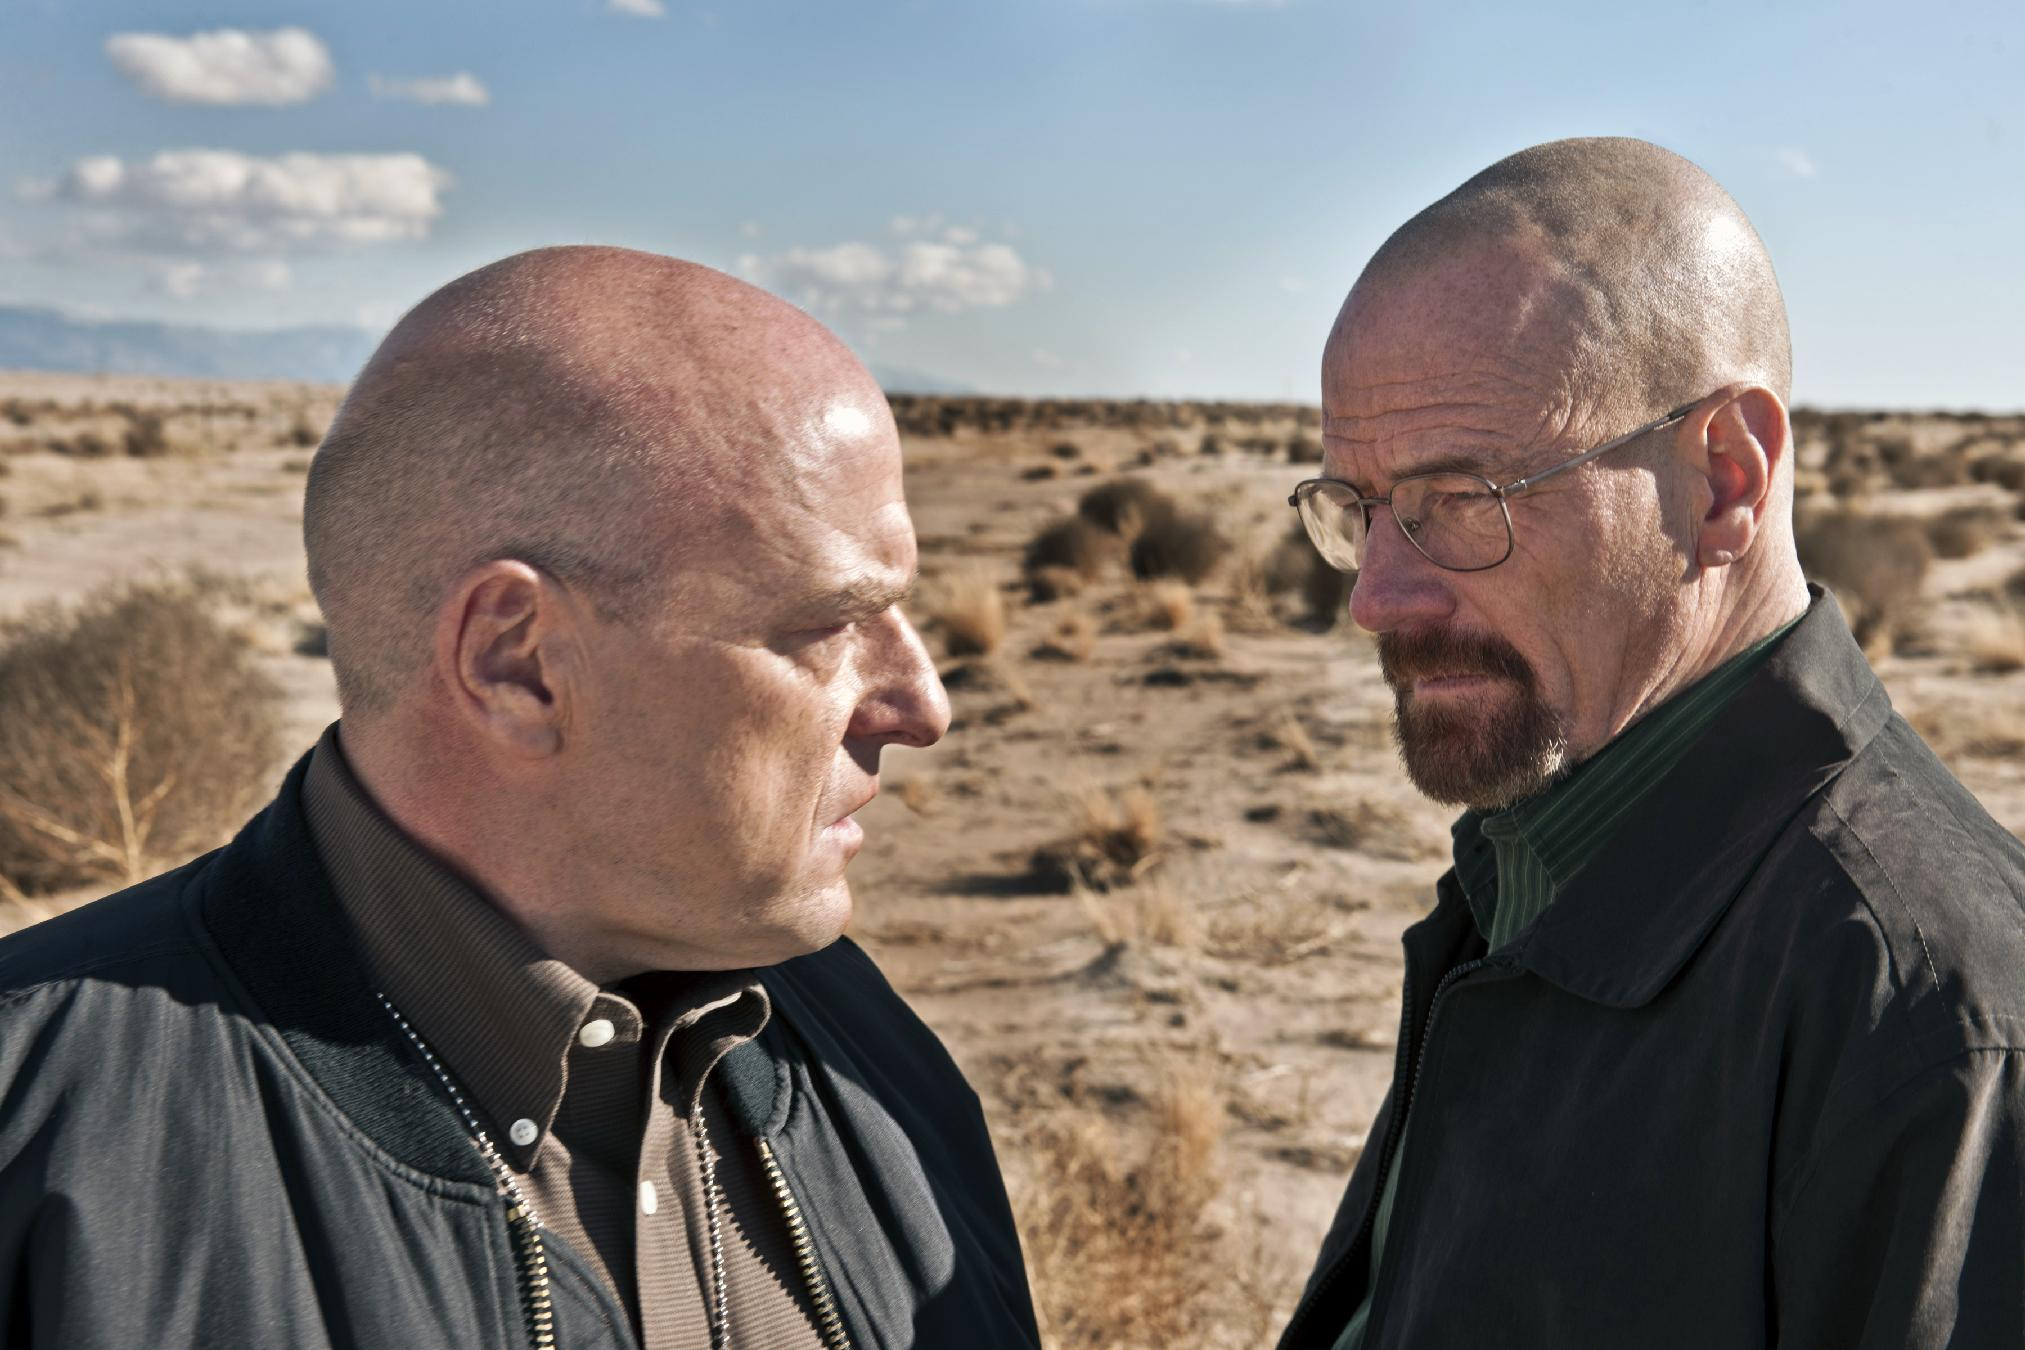 'Breaking Bad' Final Season: 5 Signs That Point to Walt's Suicide